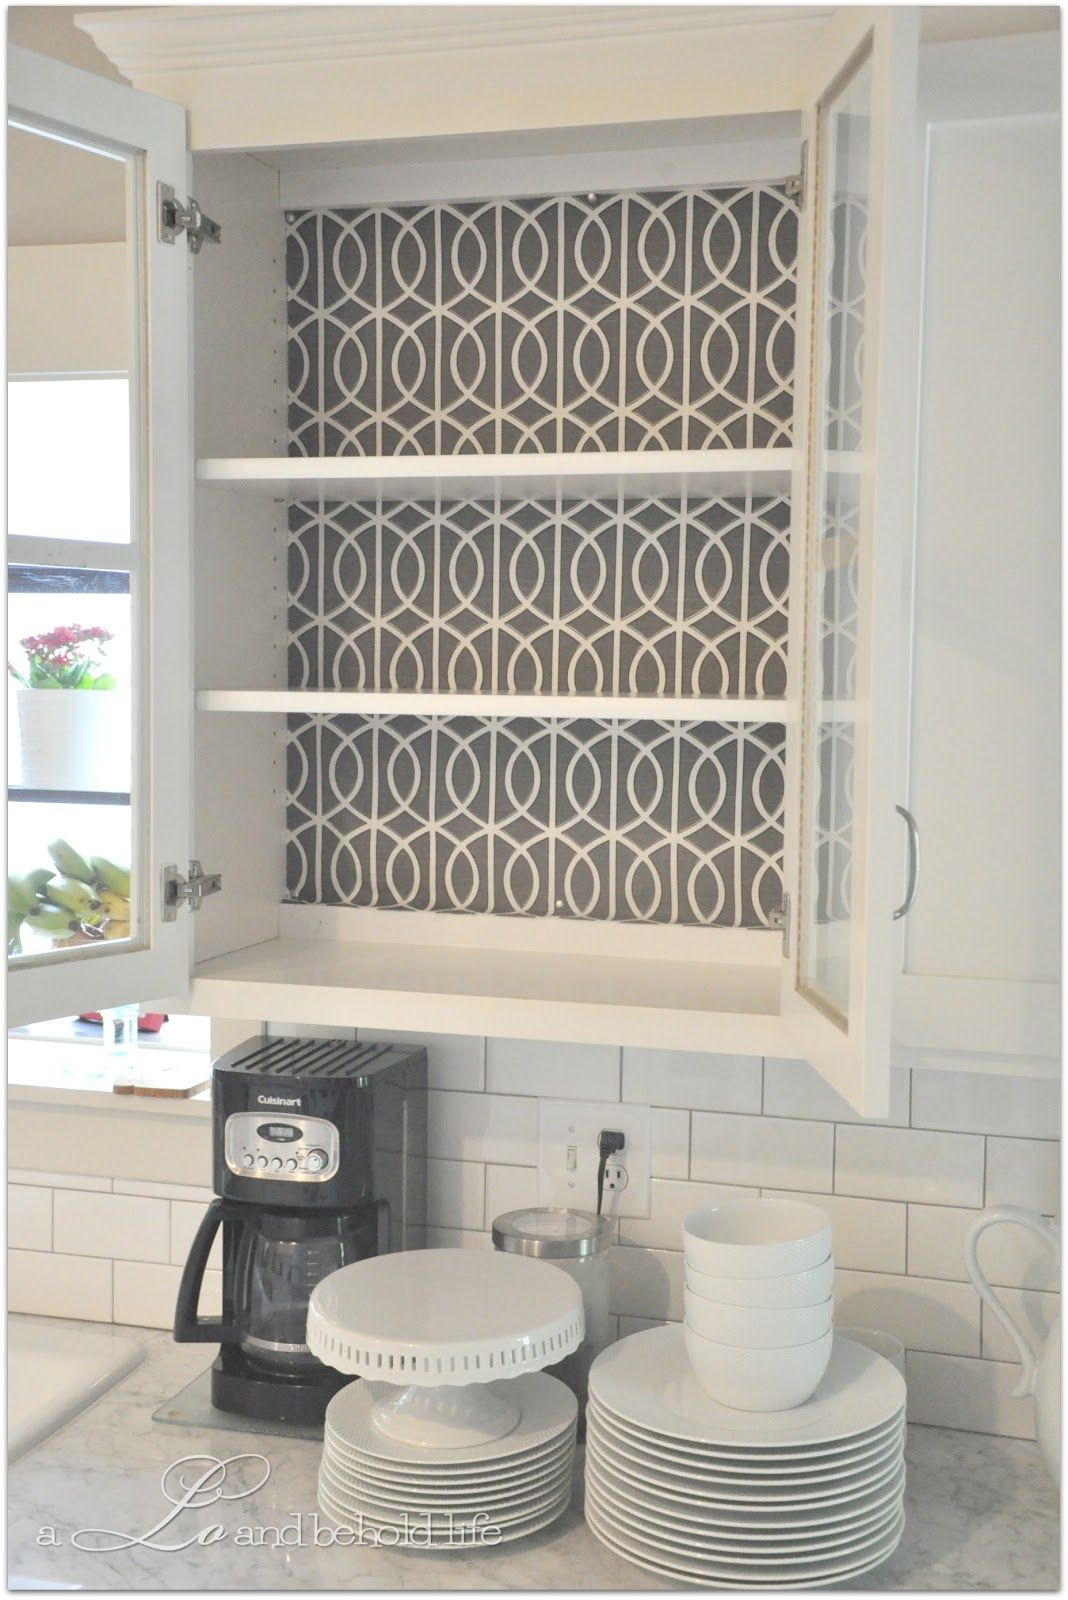 Use Fabric For The Backing Of Shelves Instead Of Paint Or Wallpaper. Love  This Idea For Glass Front Cabinets. :: Wrap Cardboard With The Fabric, ...